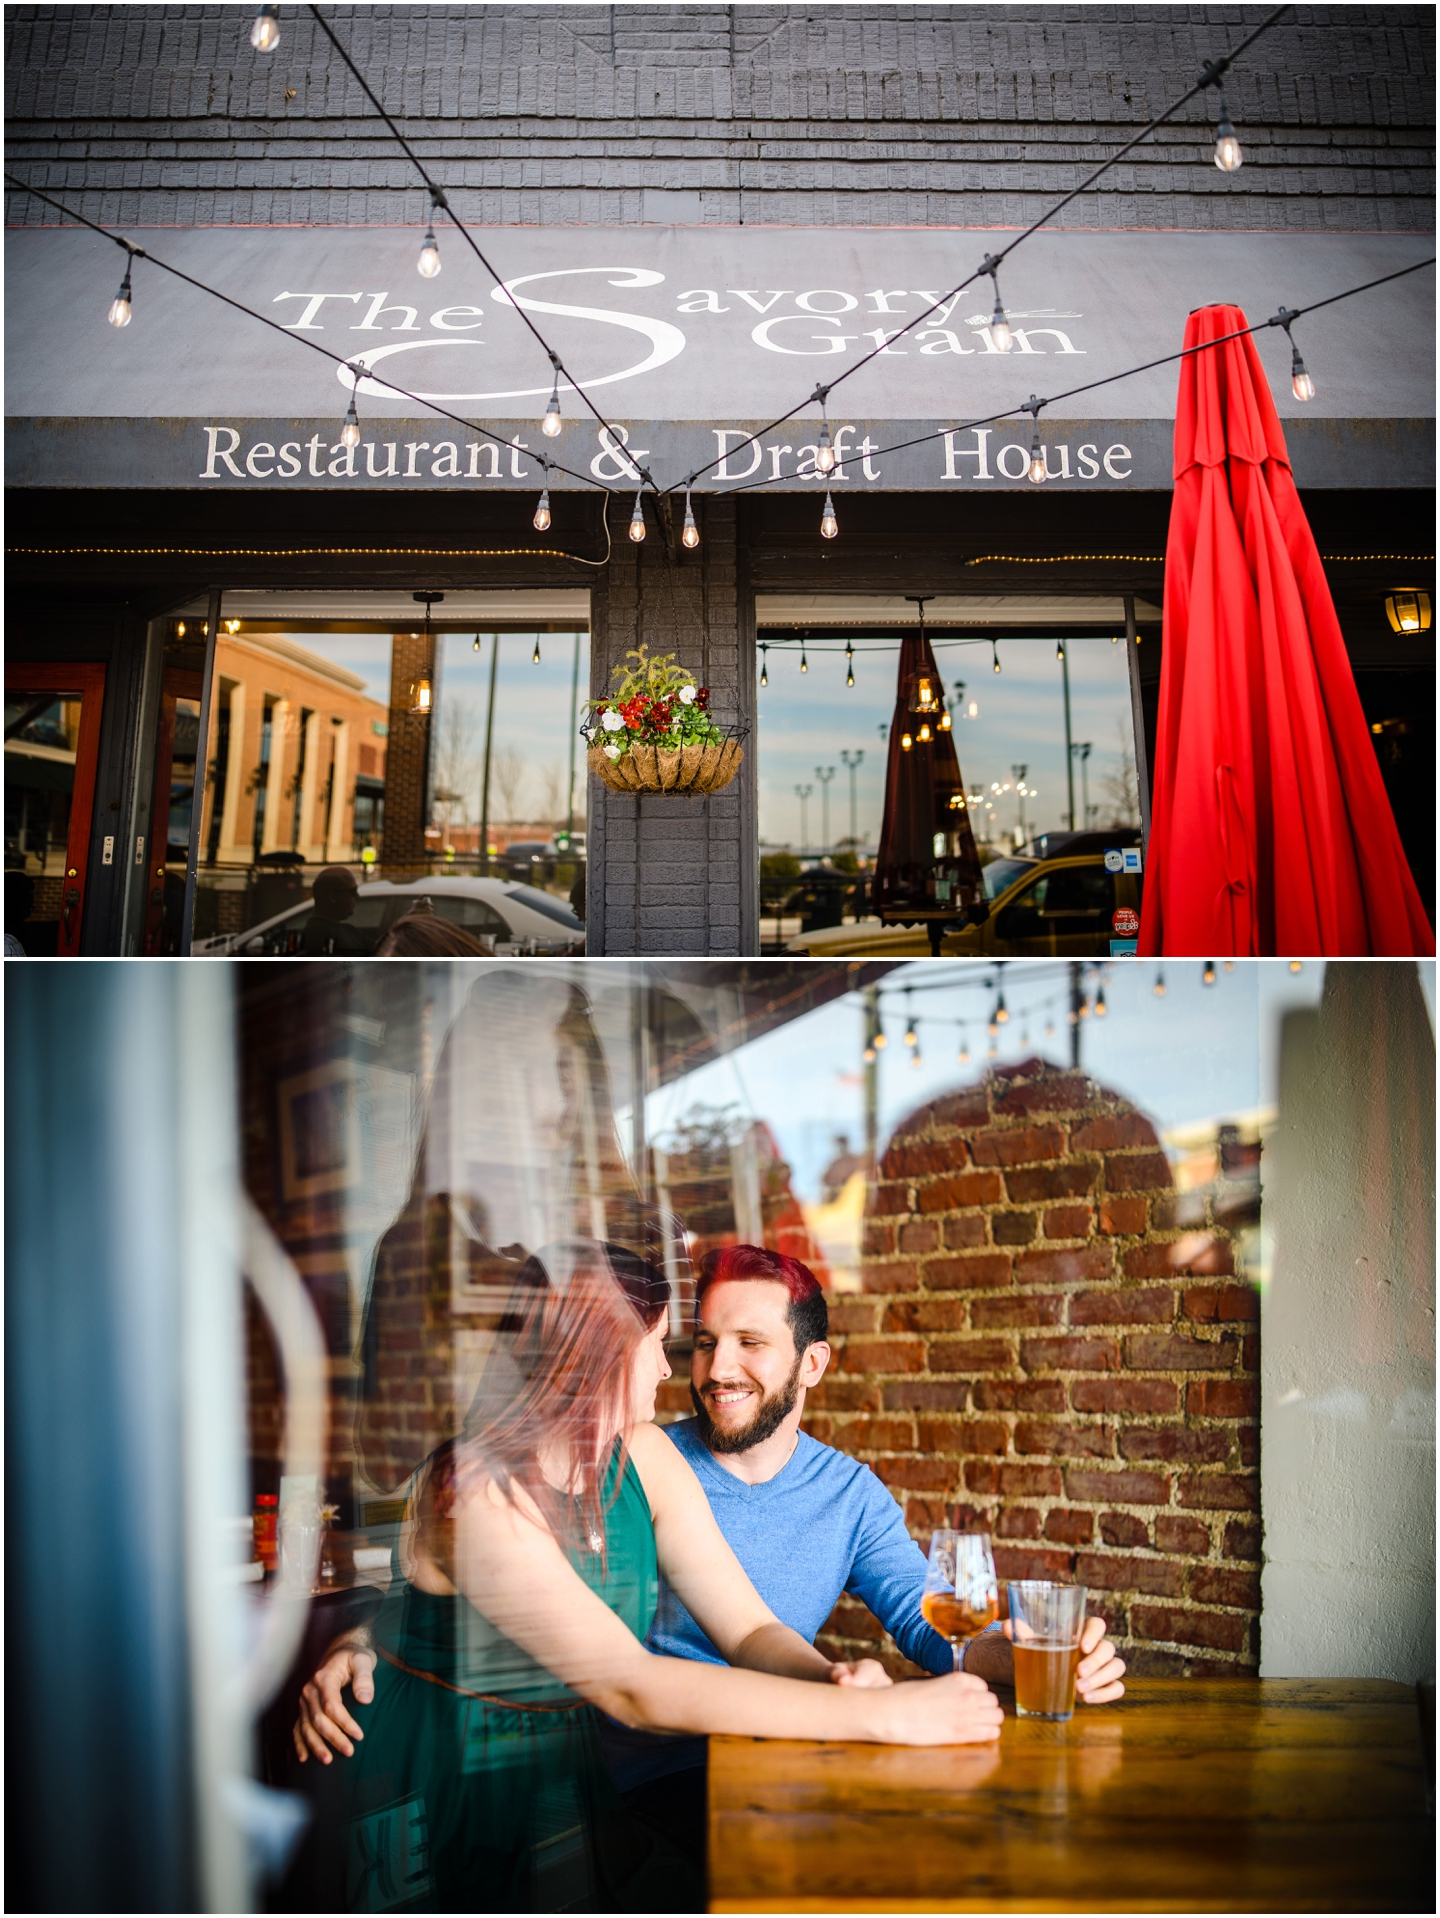 A photo of a couple through the window of a restaurant during their engagement session